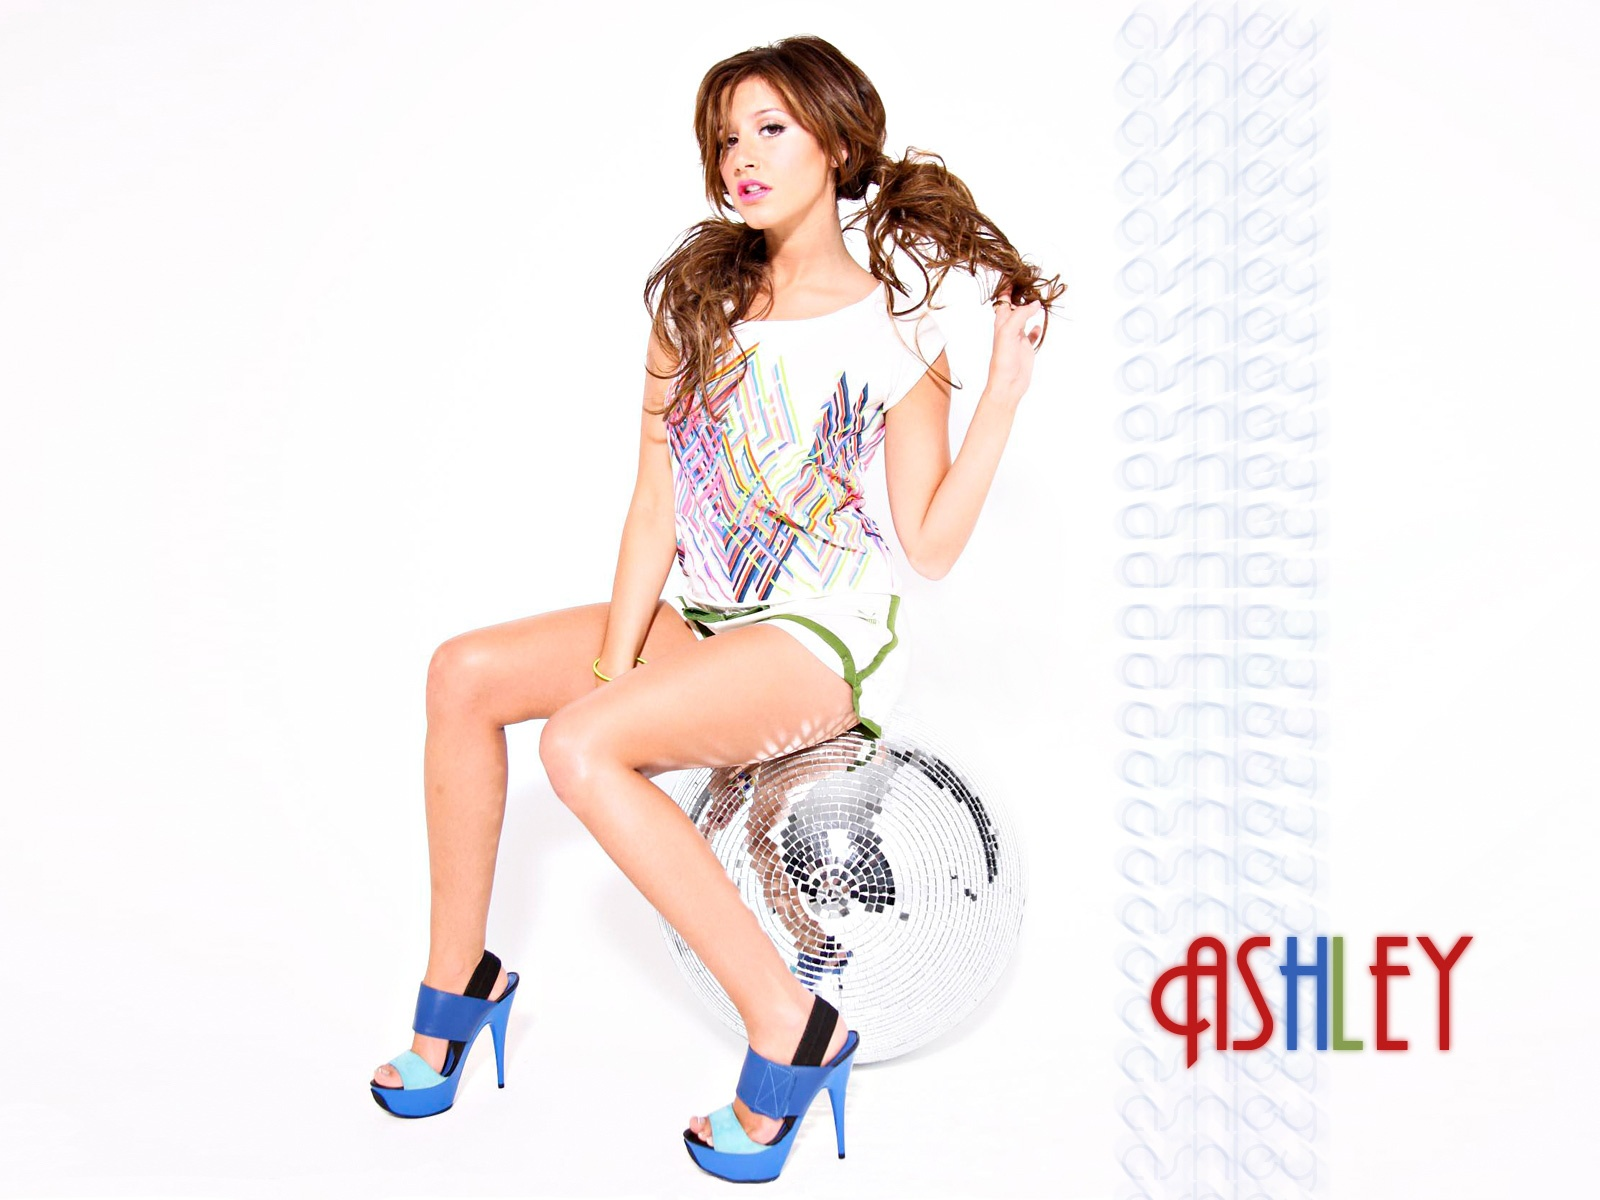 ashley tisdale images hd A6